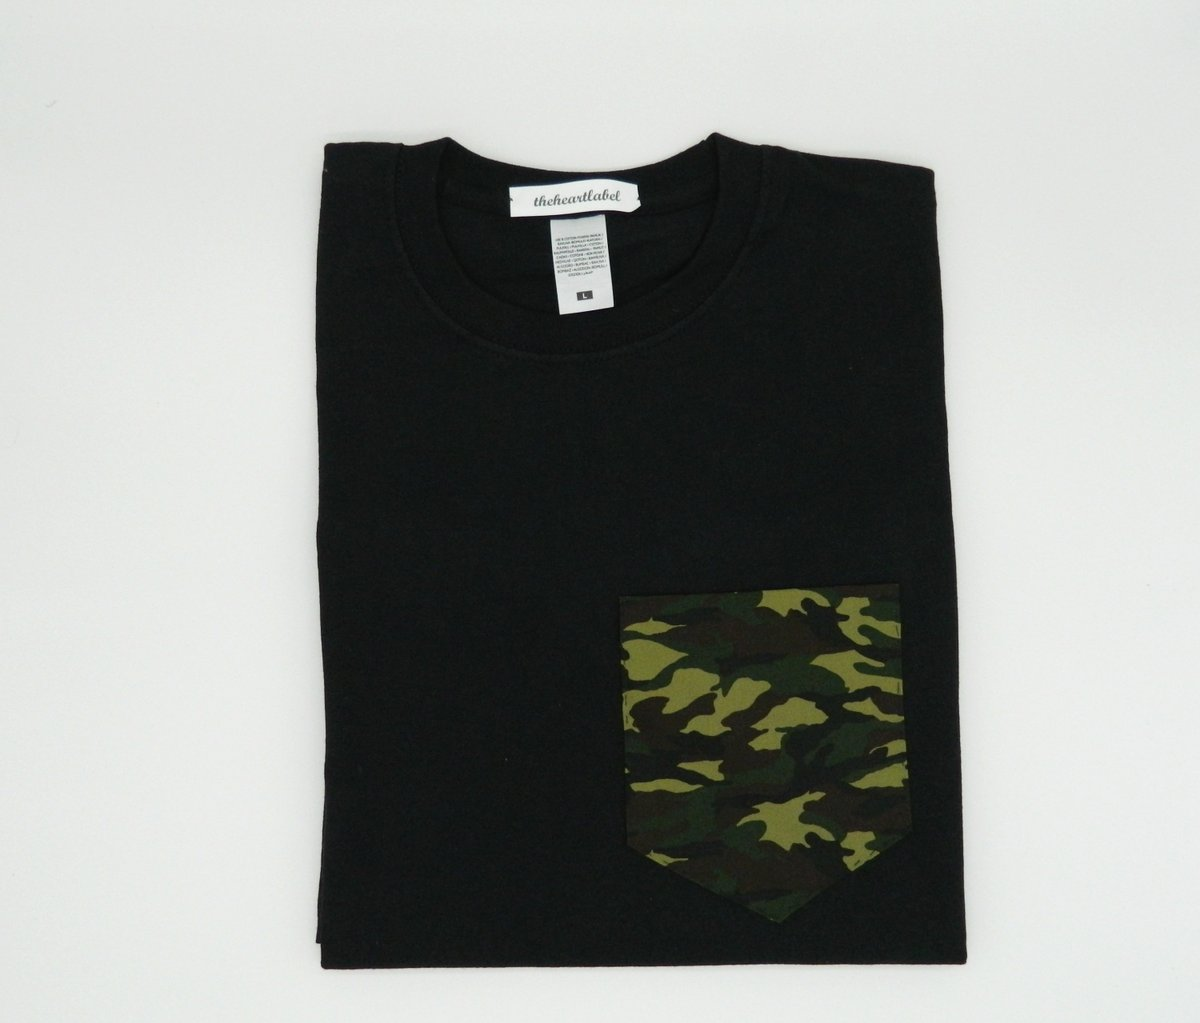 Excited to share the latest addition to my #etsy shop: Camouflage Pattern Pocket Tee, Black Pocket T-Shirt, Men's T- Shirt, Pocket tee, Unisex, Menswear, UK https://t.co/4qfomxLycj #streetwear #shortsleeve #crew #pockettee #pockettshirt #menswear #menstshirt #uk #heart https://t.co/bw3YGPisWa